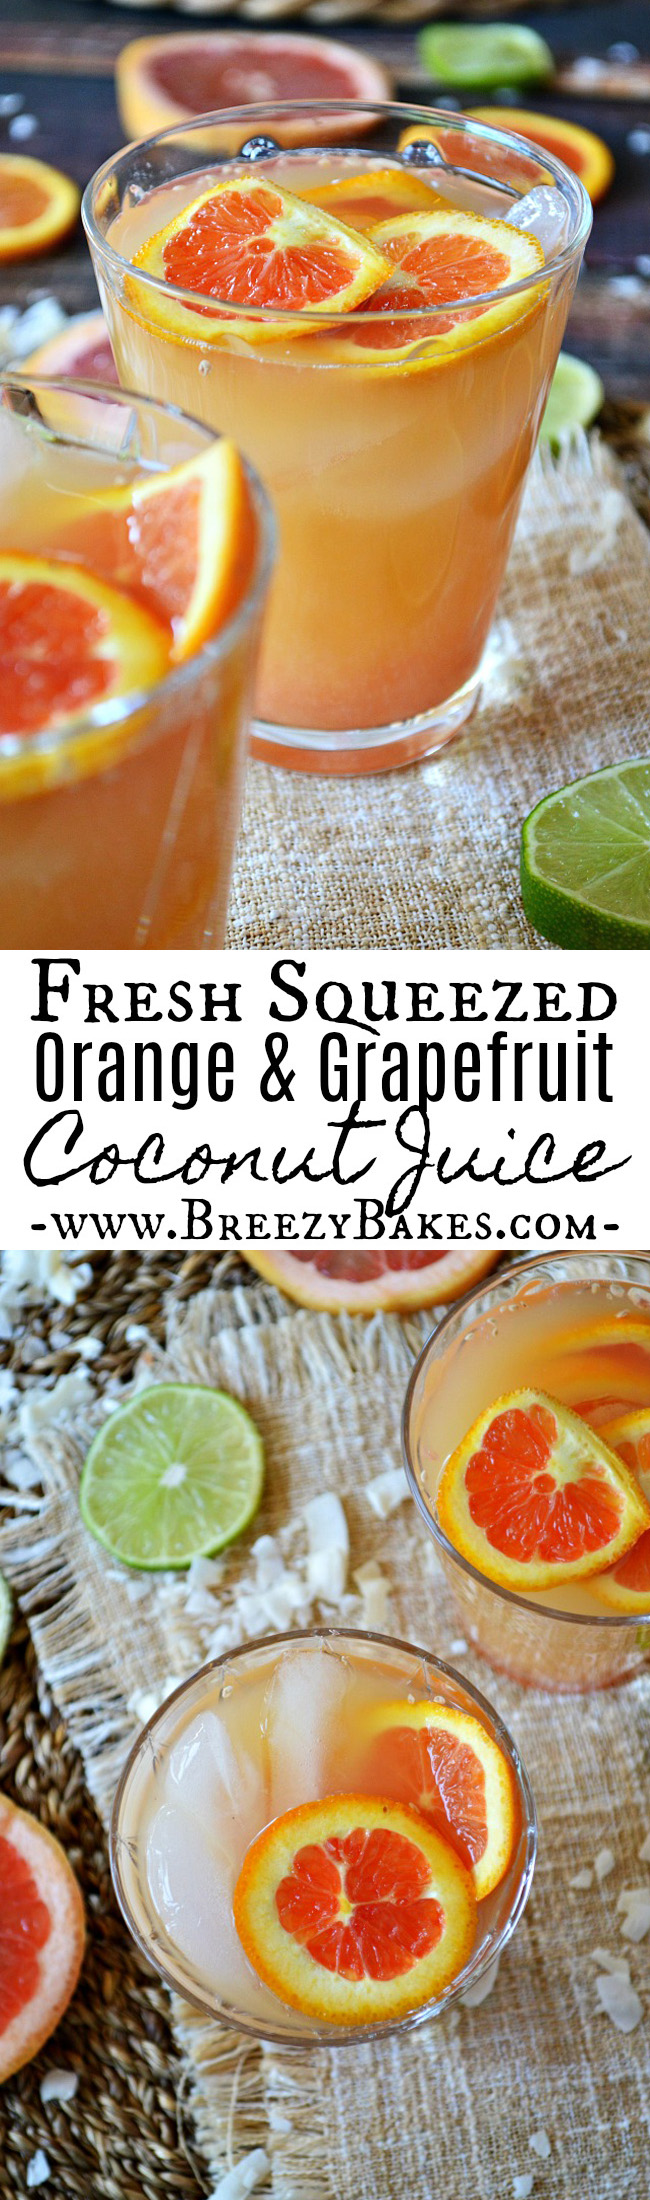 Whether it's a jump start to your morning or a mid day pick-me-up, this Fresh Squeezed Orange and Grapefruit Coconut Juice is the perfect refresher! A mixture of orange juice, grapefruit juice and coconut water give this a light tropical, citrus flavor.